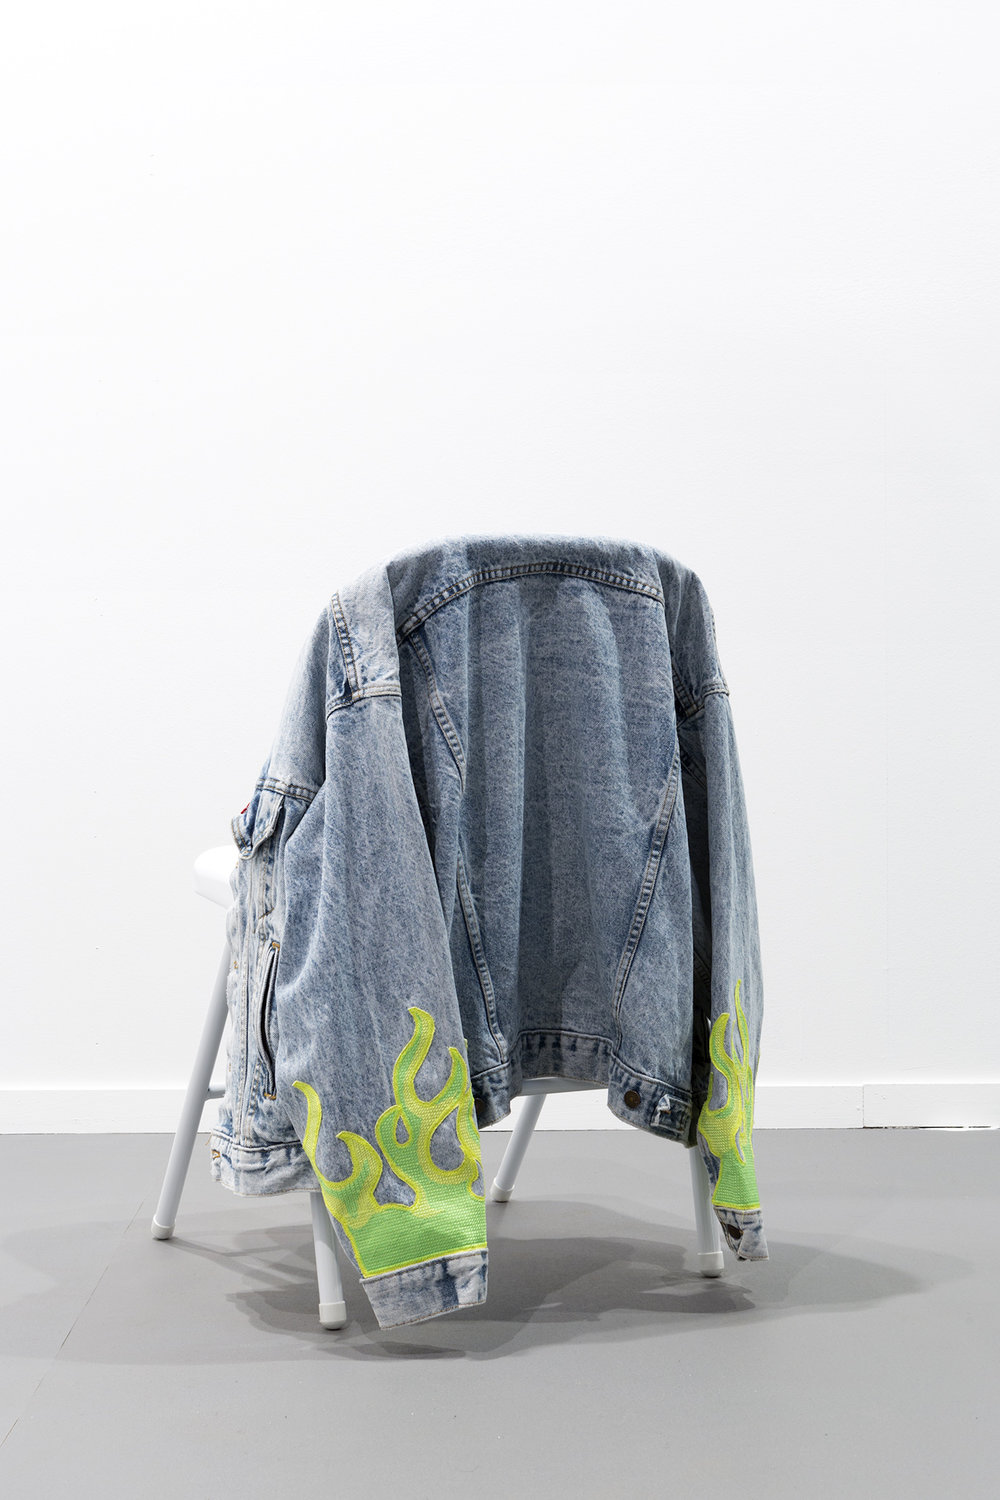 Raja'a Khalid   sh-r-k  2018 Custom embroidery on denim dimensions variable  Installation view / ARCOmadrid2018